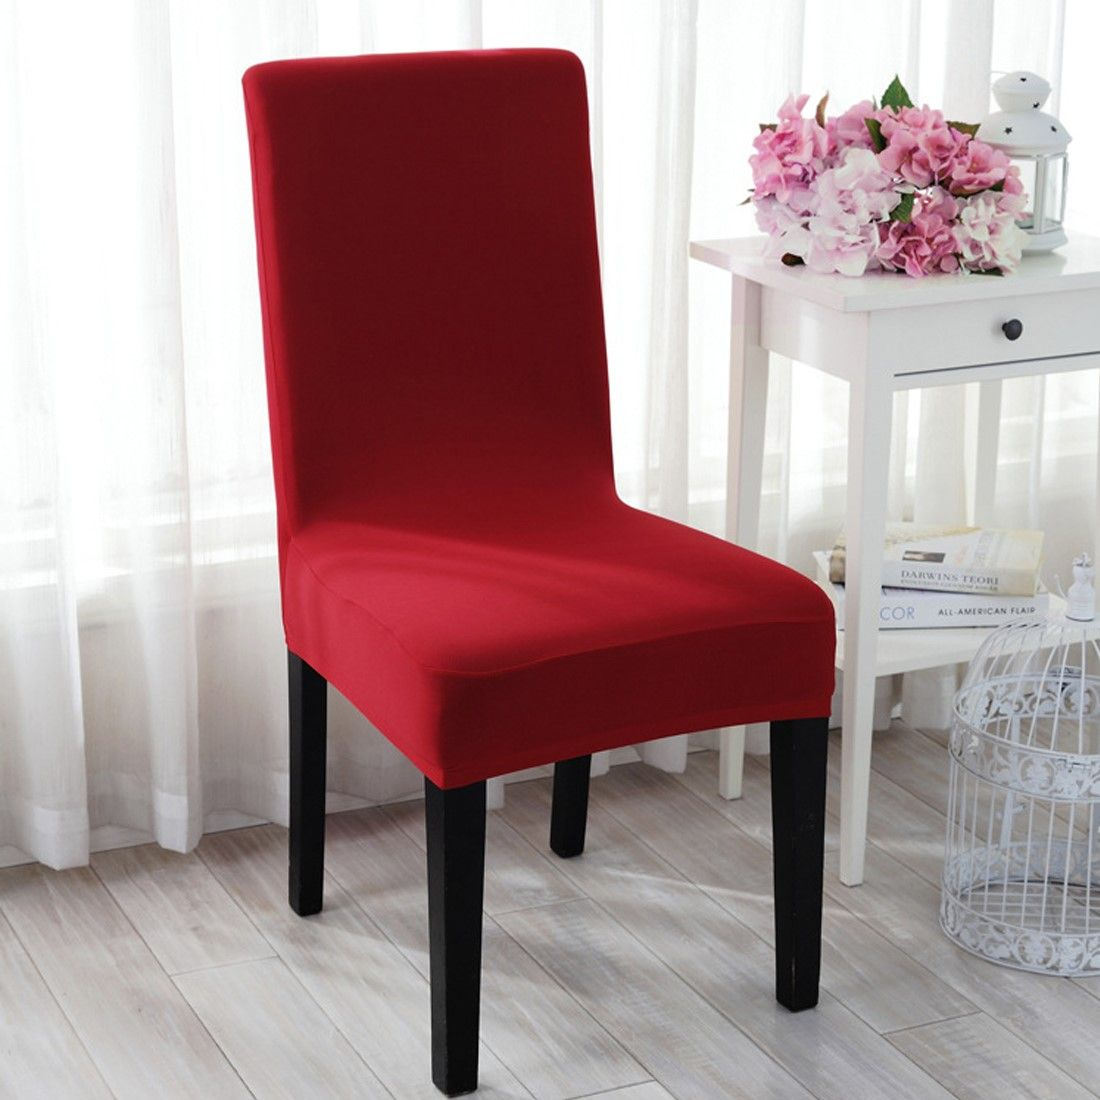 dining chair fitted seat coversdining chair fitted